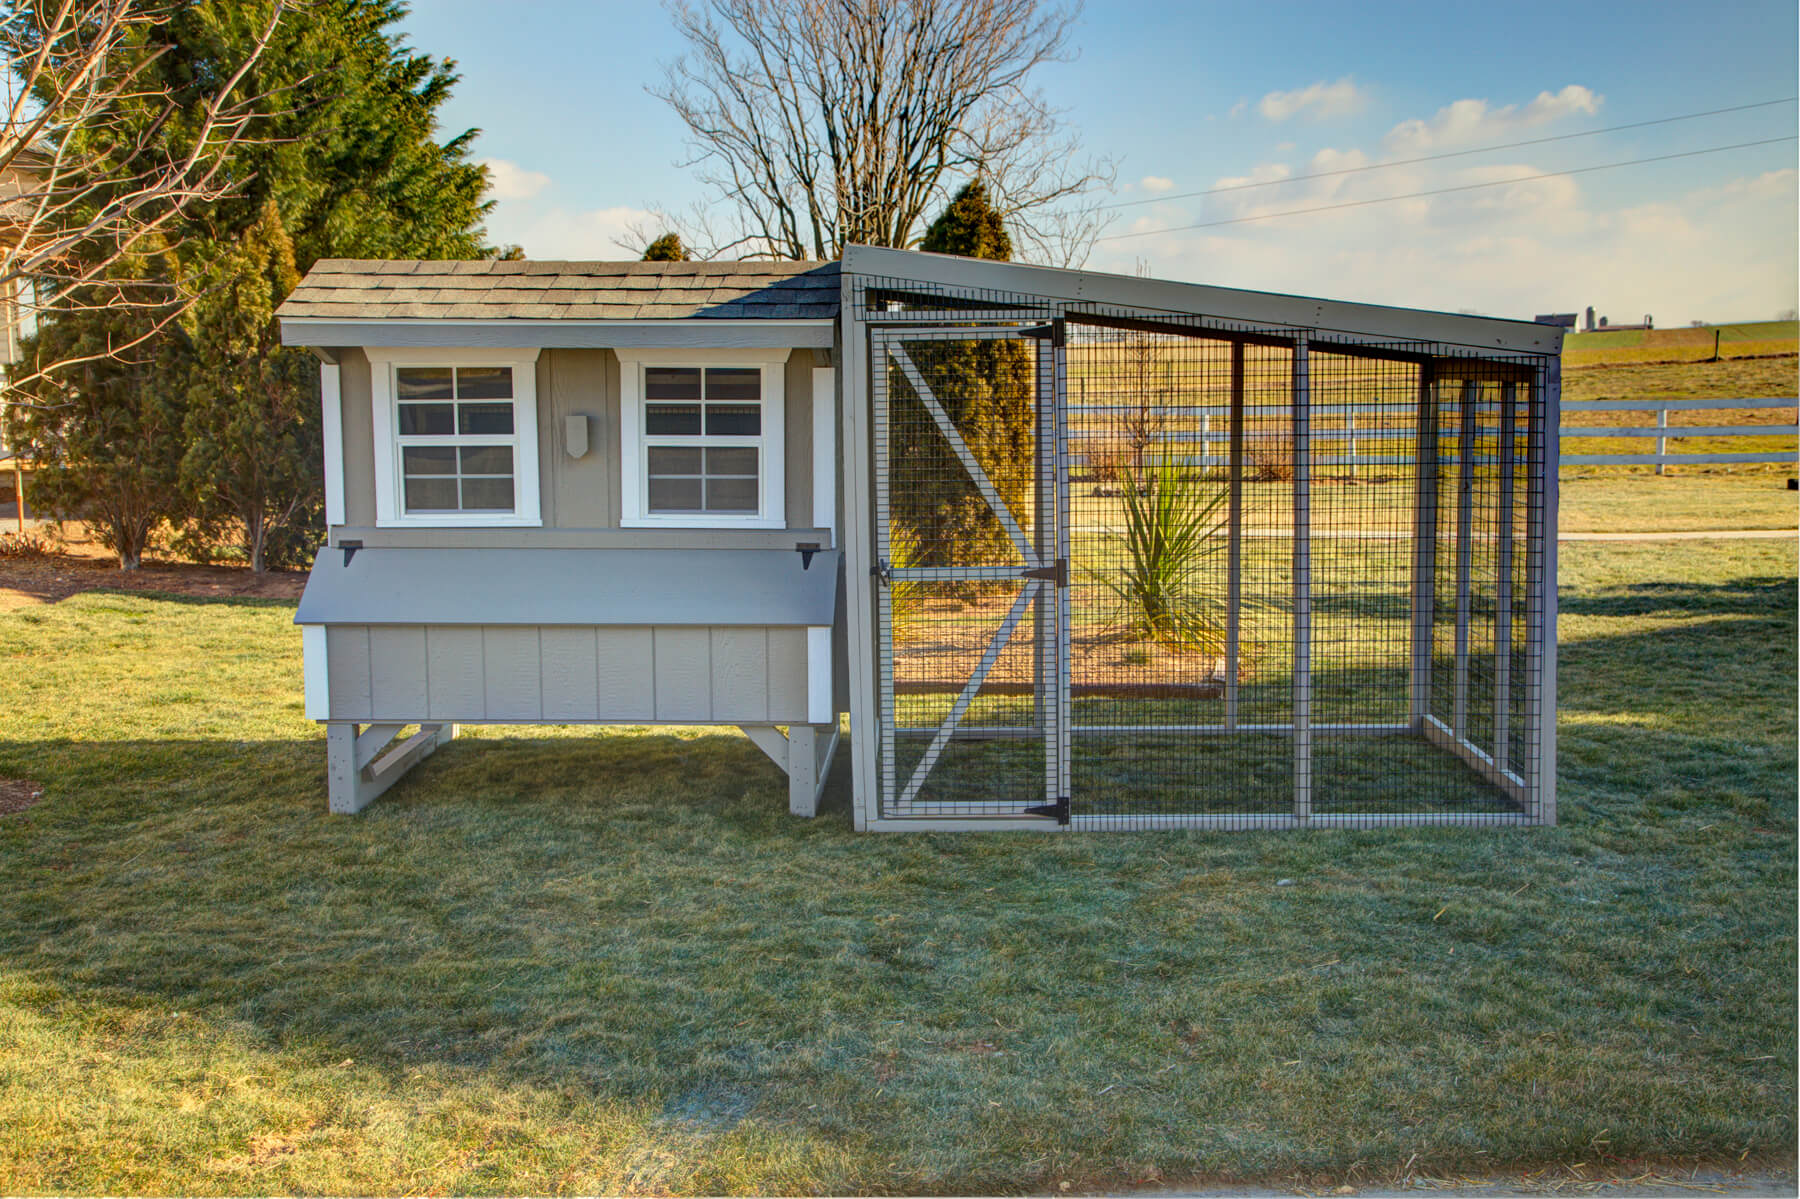 6'x8'x6' chicken run with roof.